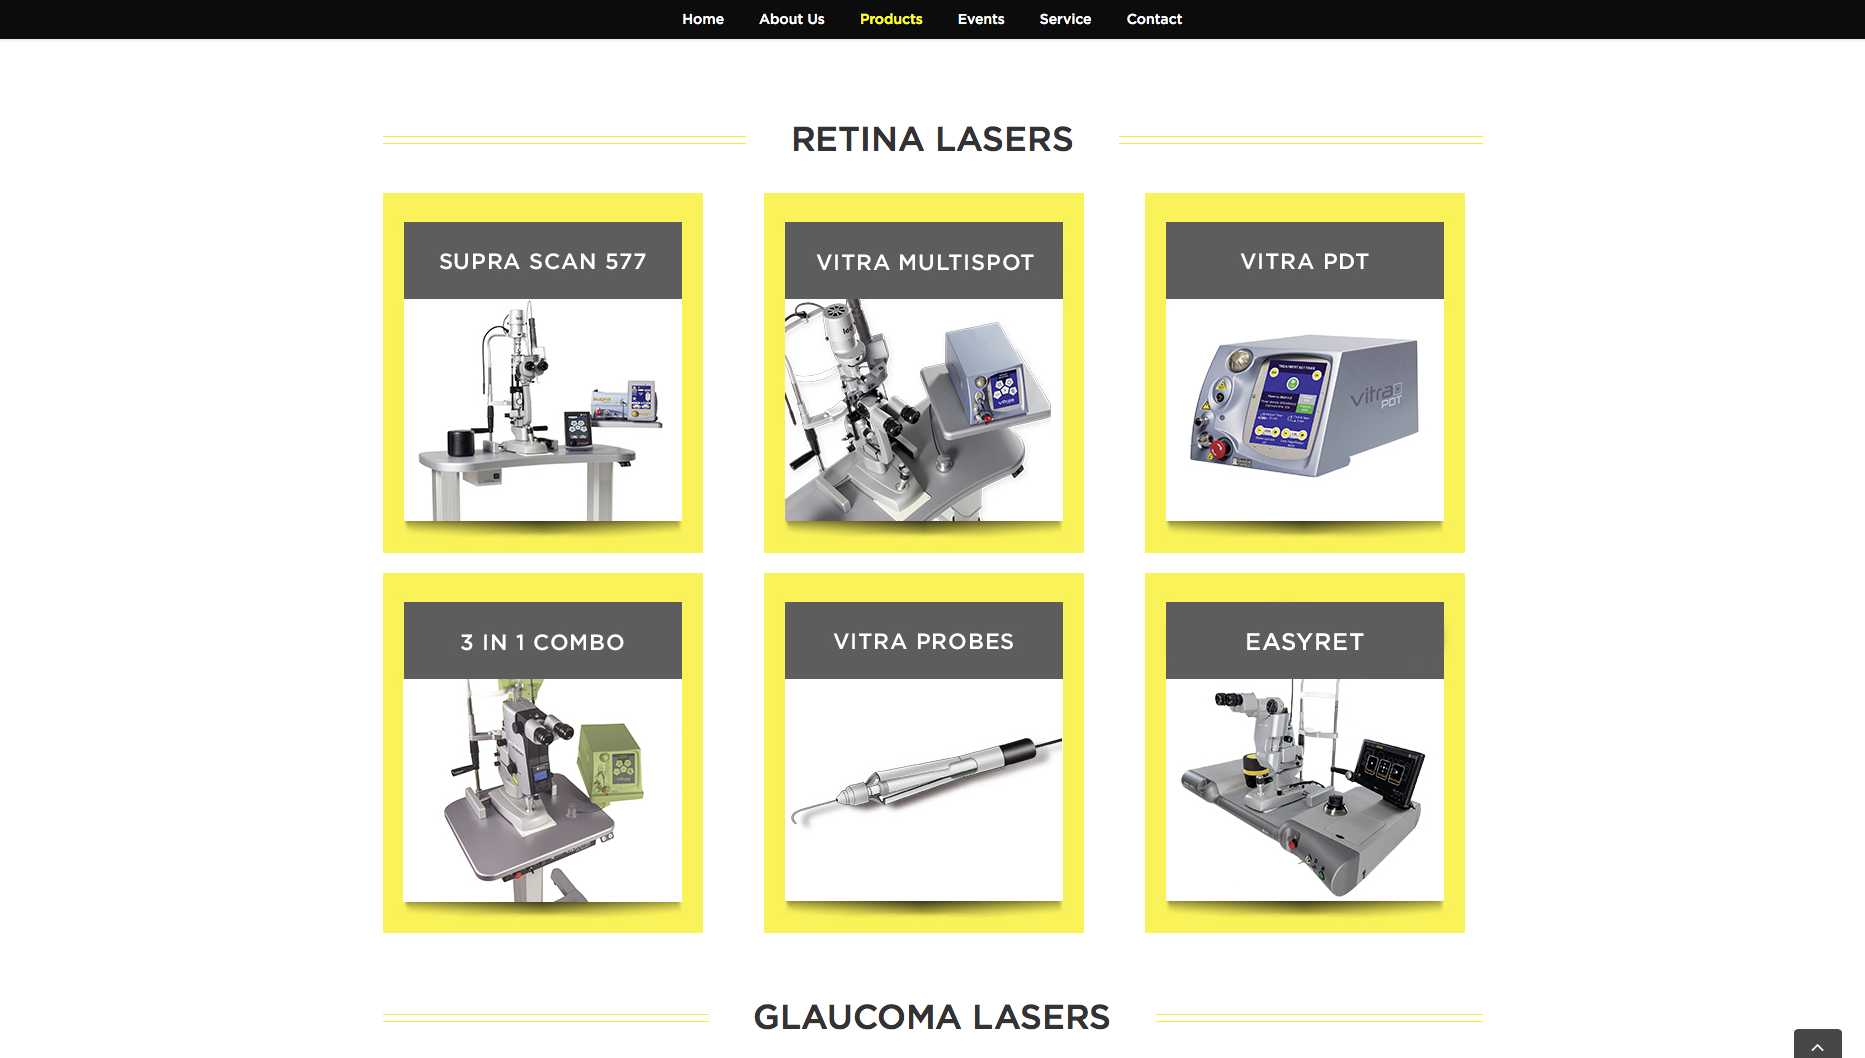 Retina Lasers Product page design for Daybreak Medical website re-design